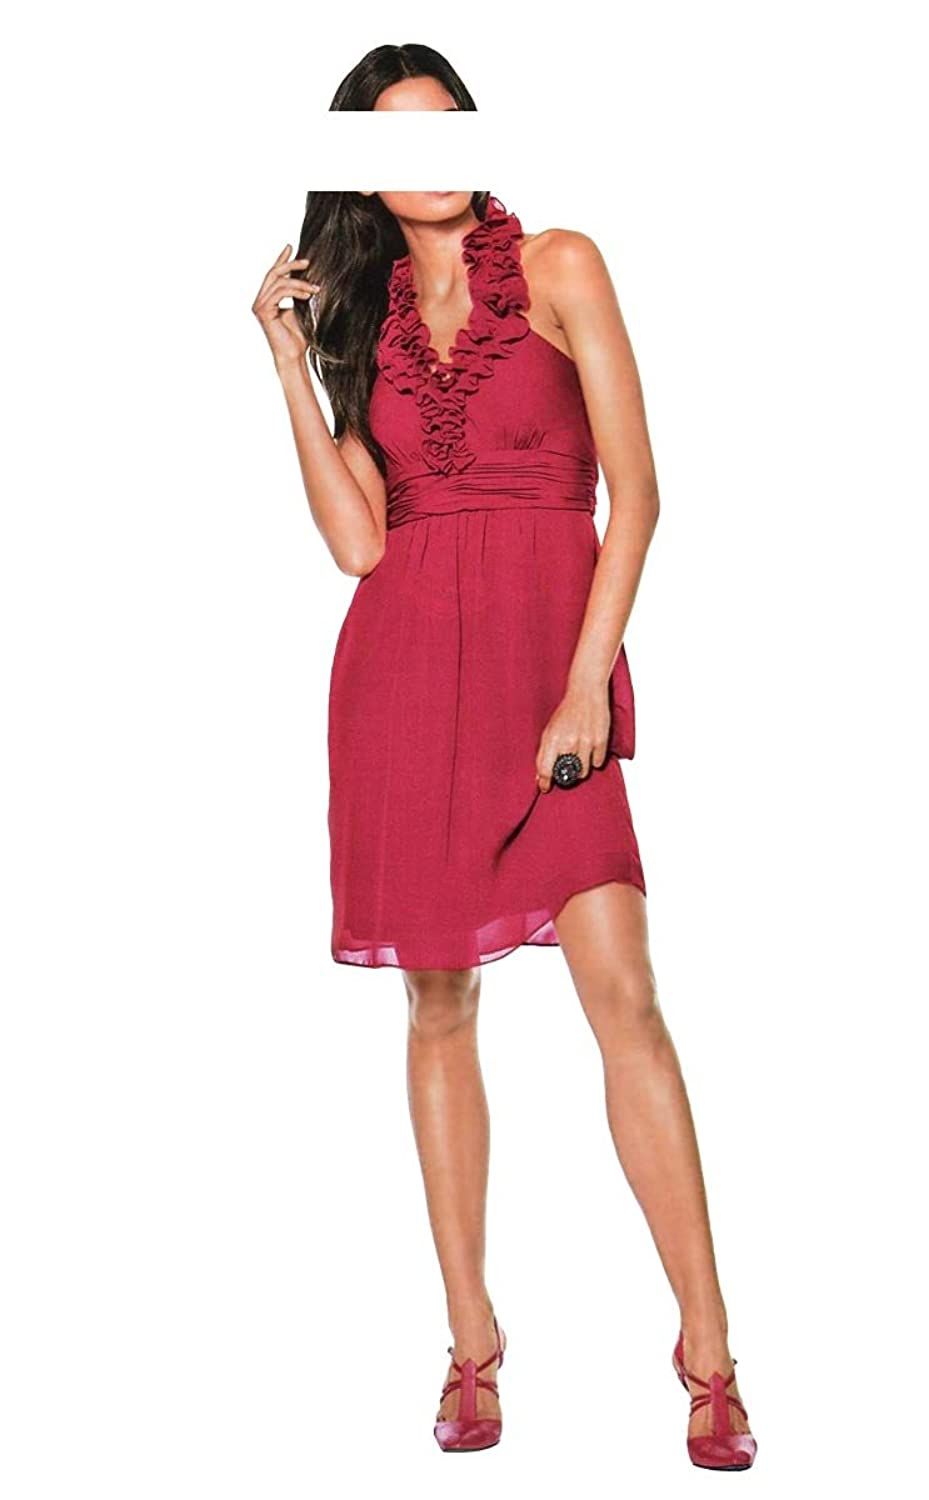 Ashley Brooke event Women's Cocktail Opaque Dress Red Red